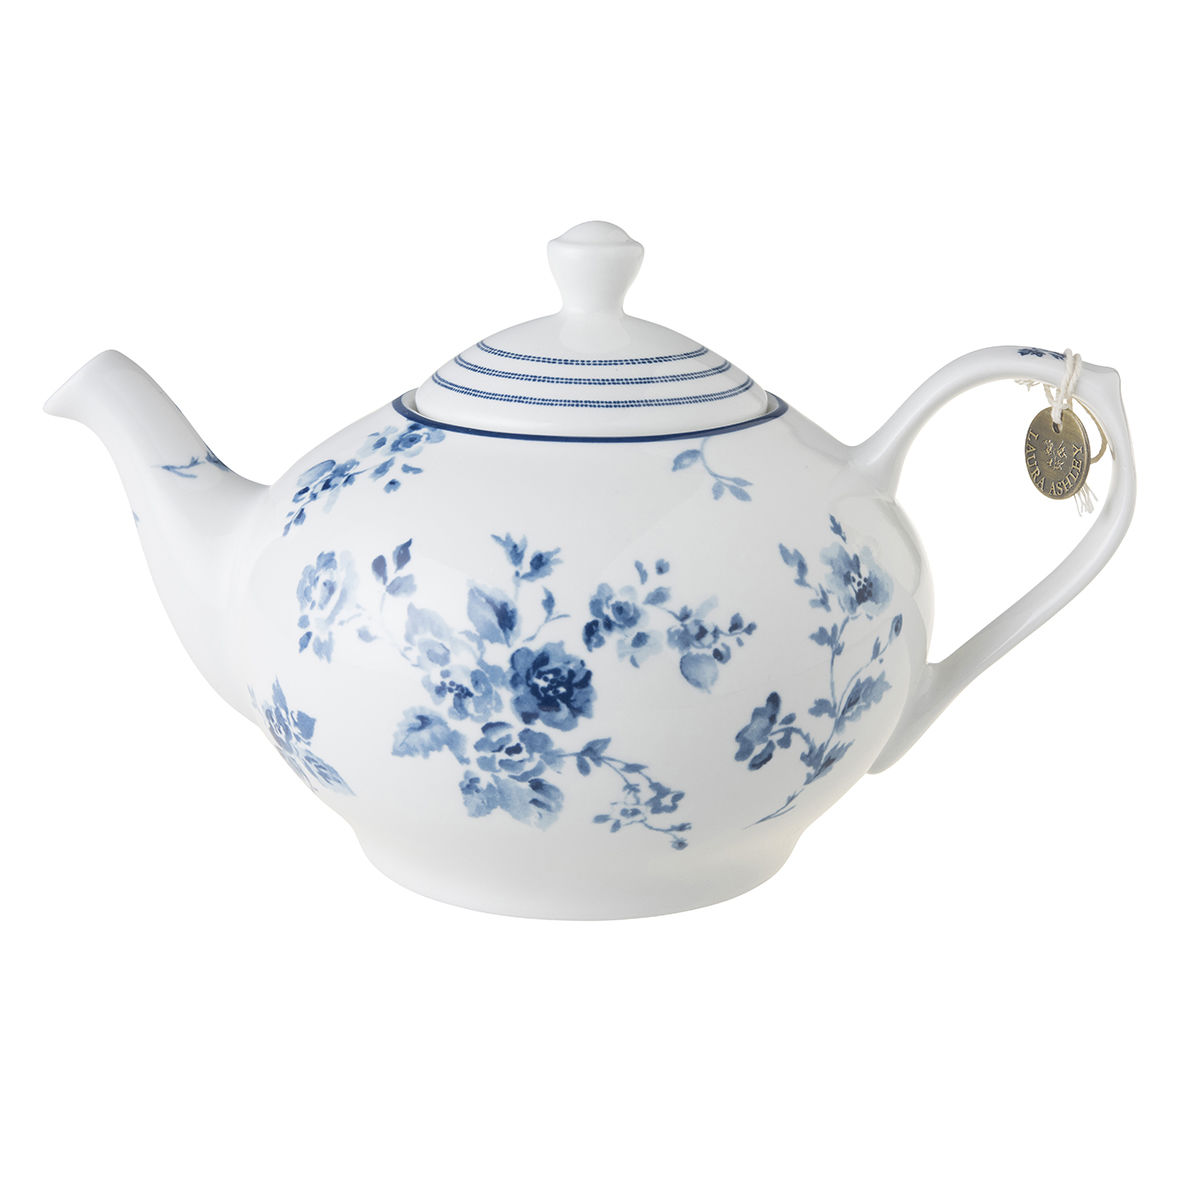 Laura Ashley Teapot China Rose - product images  of